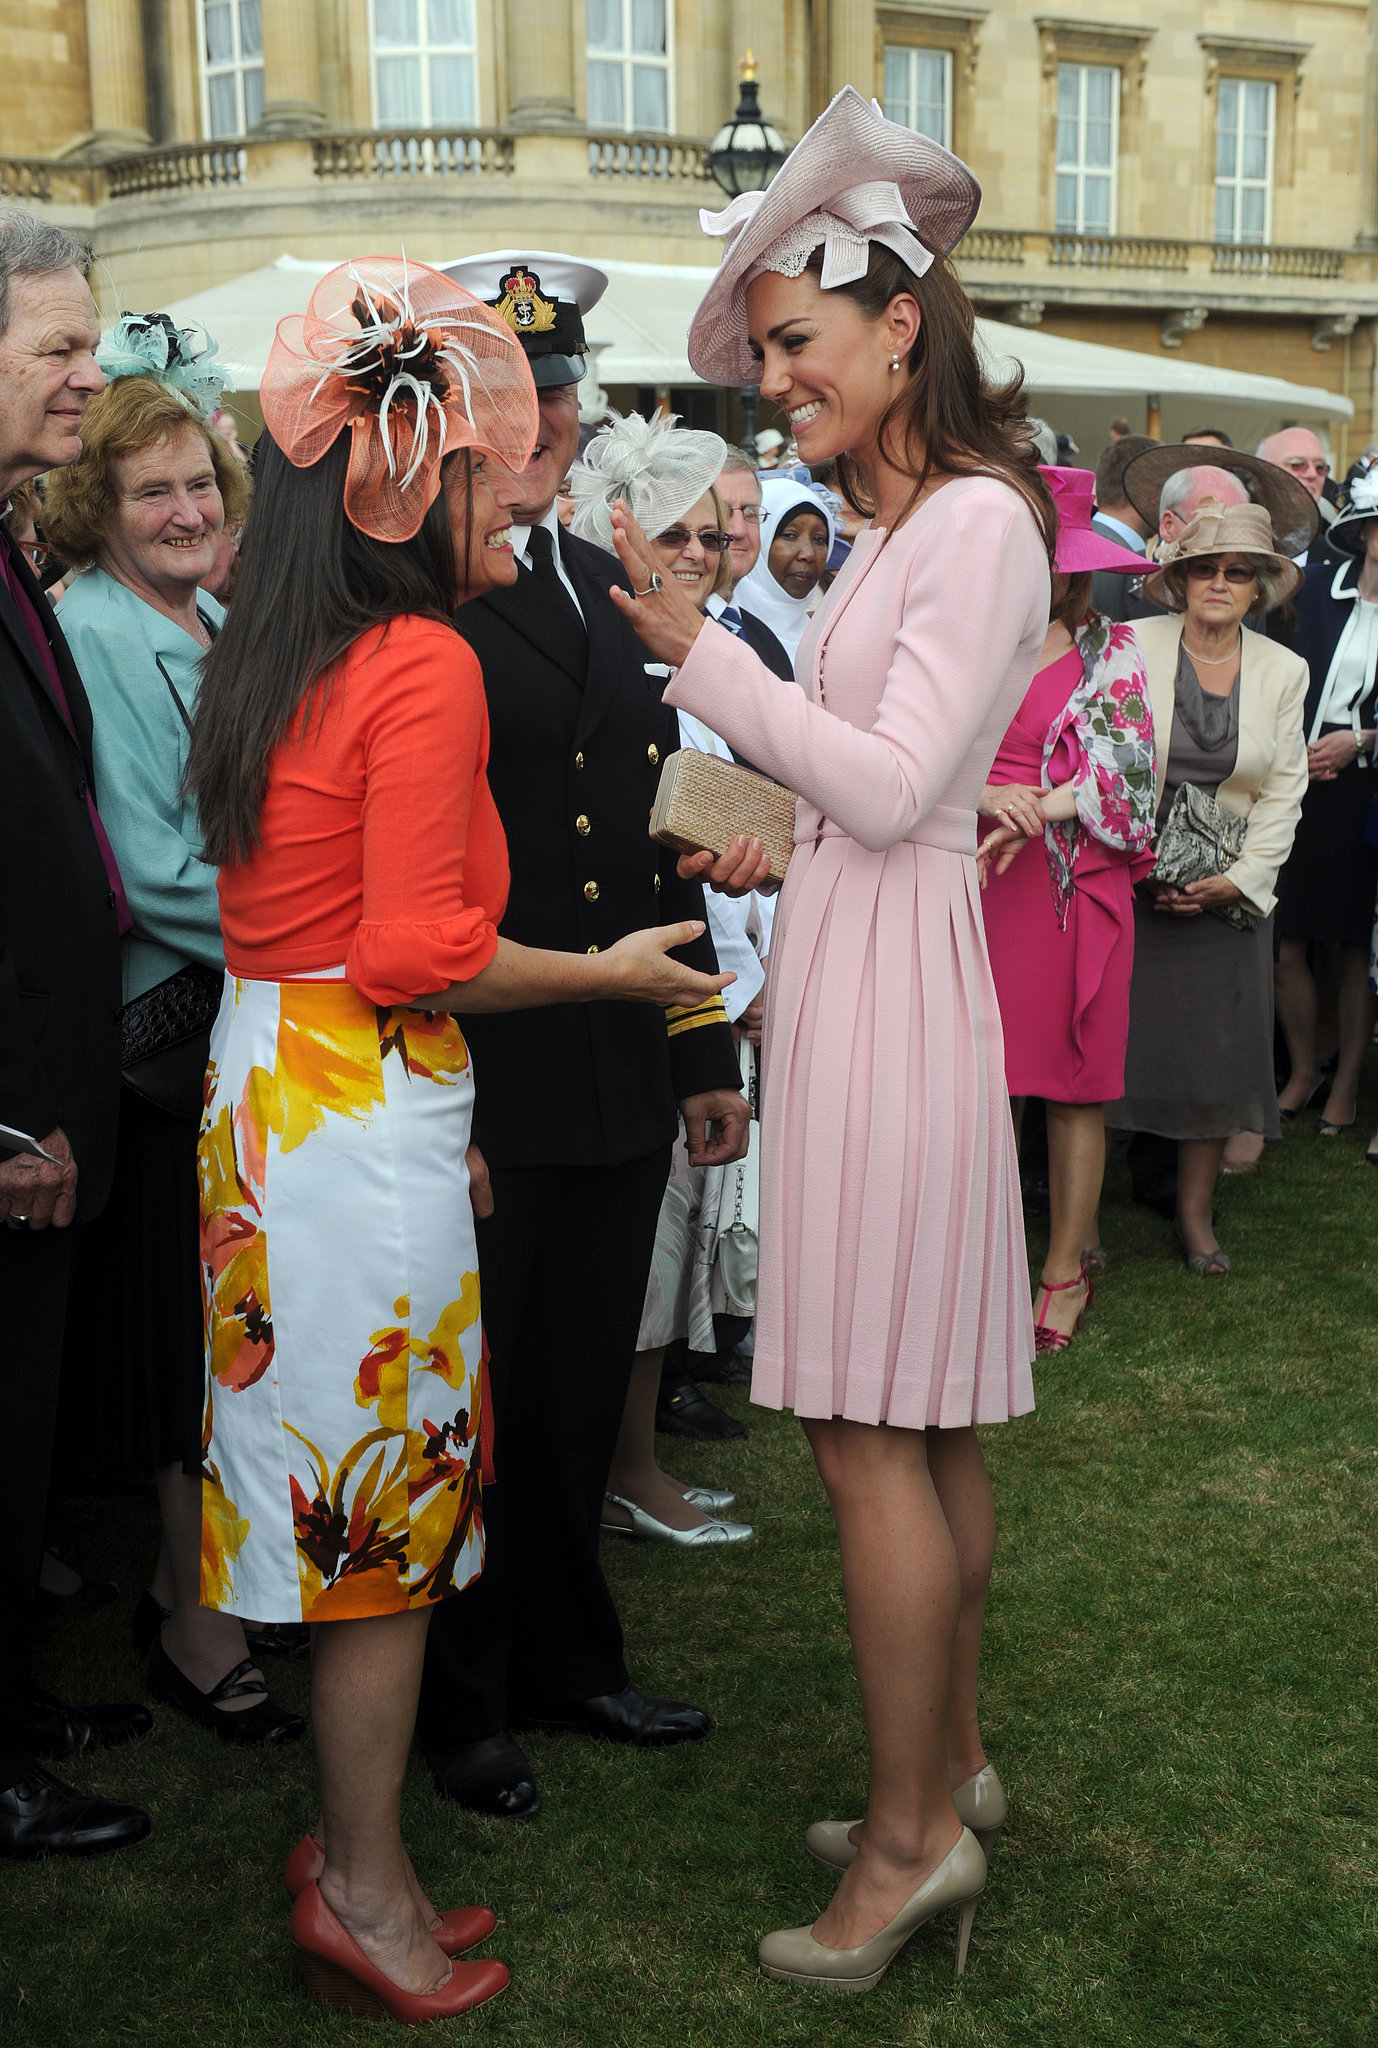 She went for a pink ensemble at the May 2012 garden party at Buckingham Palace.